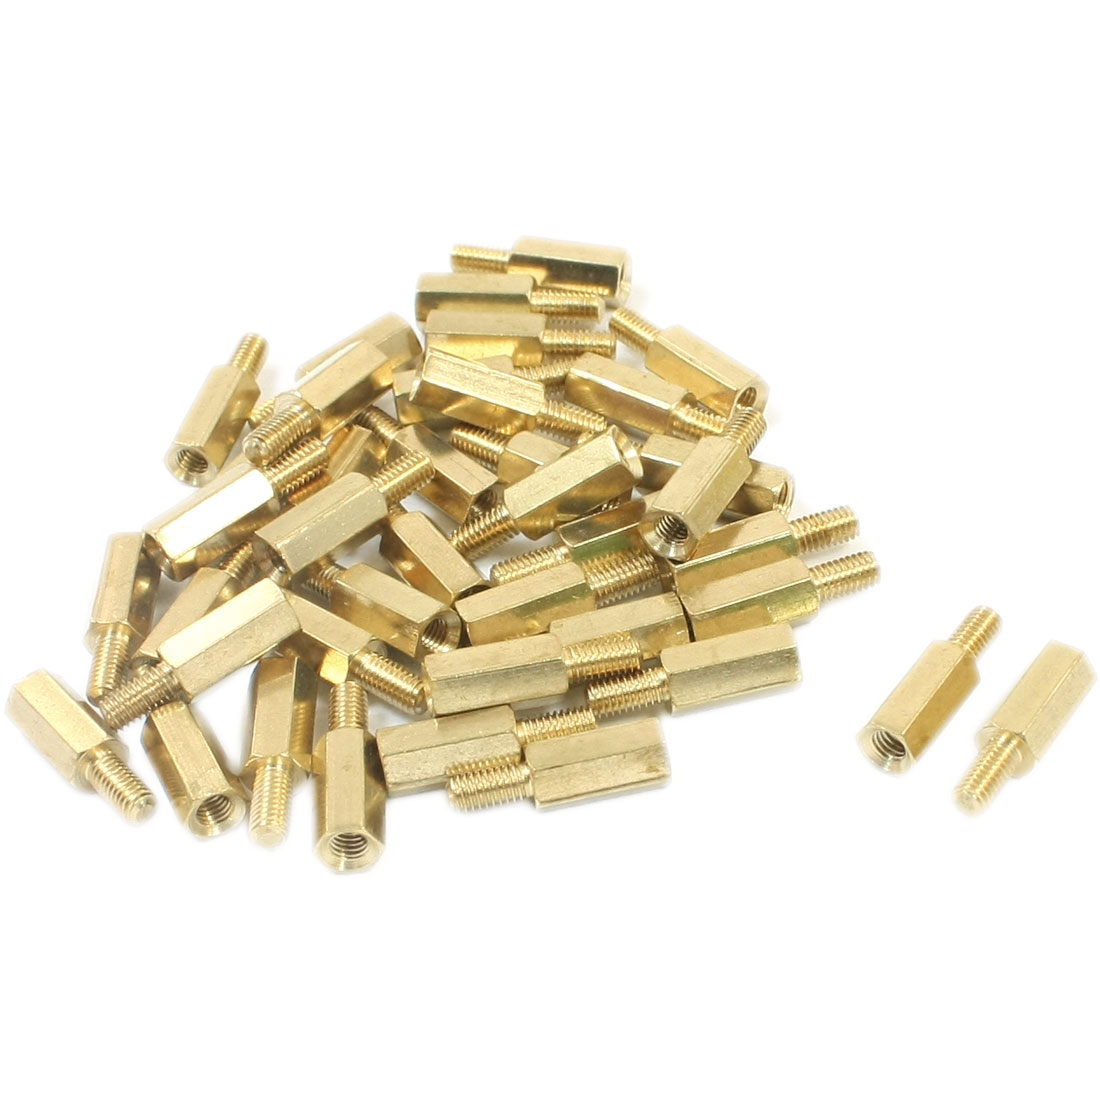 M3x10mmx16mm Male Female Thread Gold Tone Brass PCB Hexagonal Nut Standoff Spacers 40 Pcs